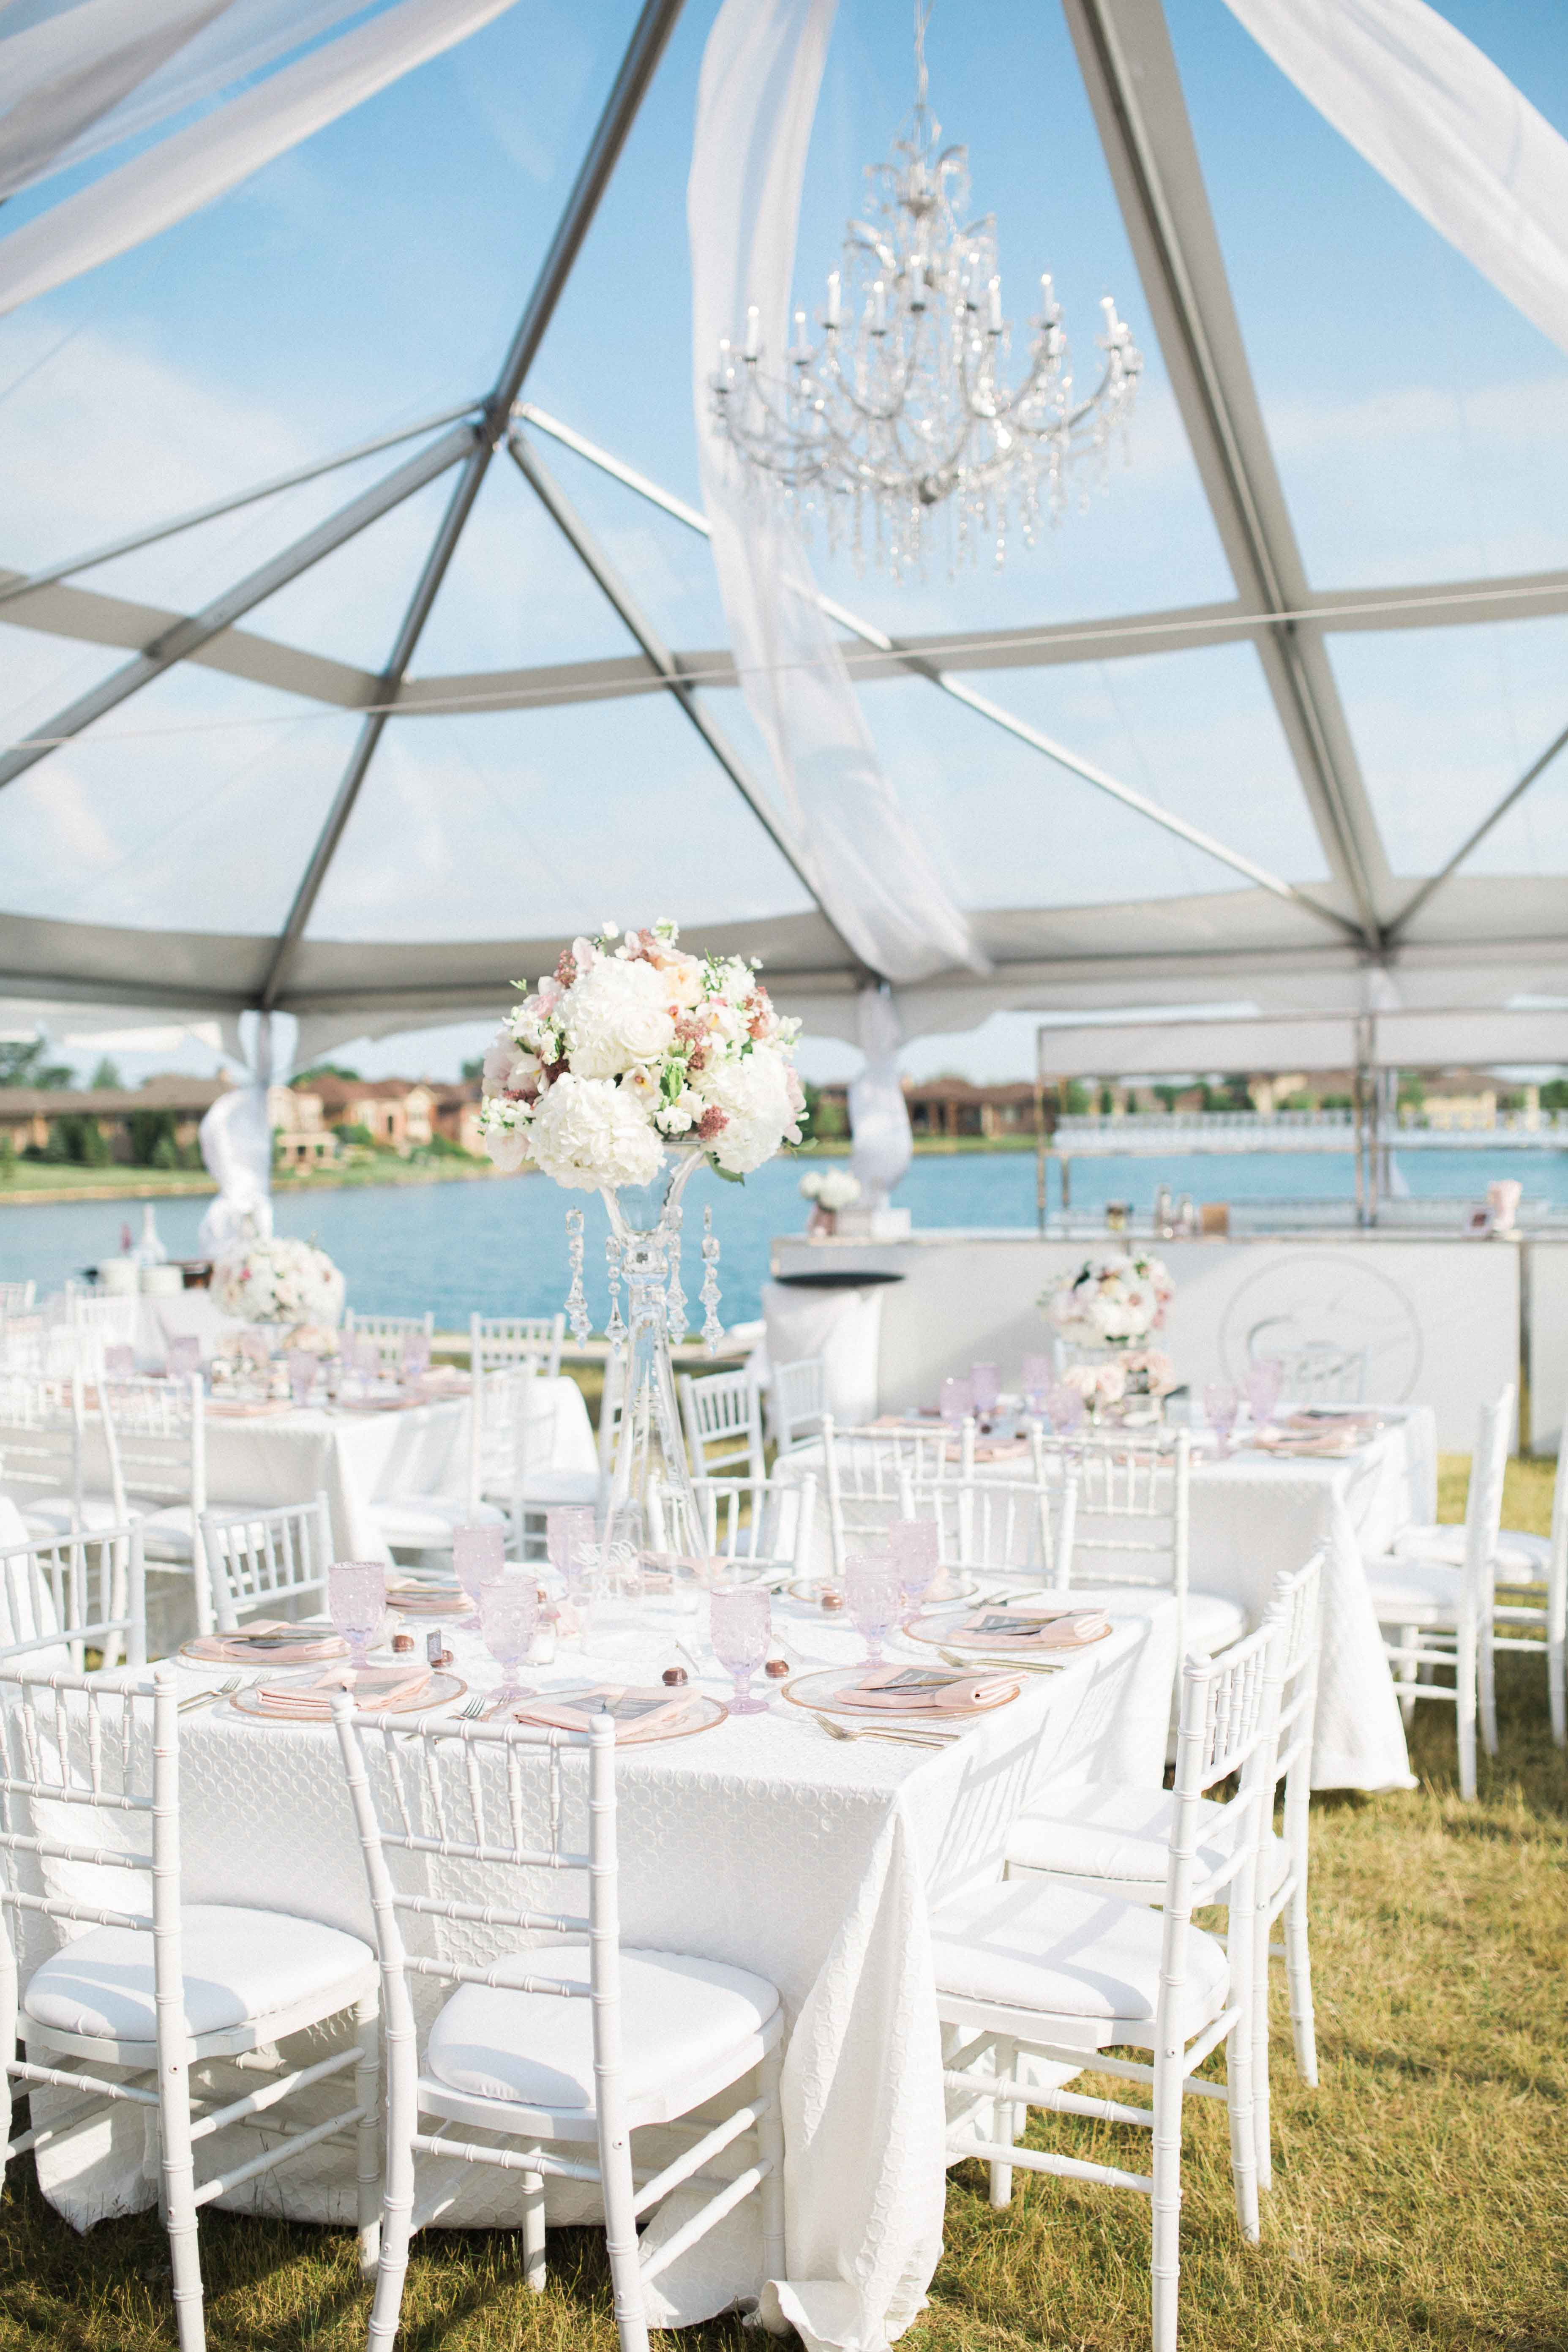 Clear top wedding tent with pink and white reception decor